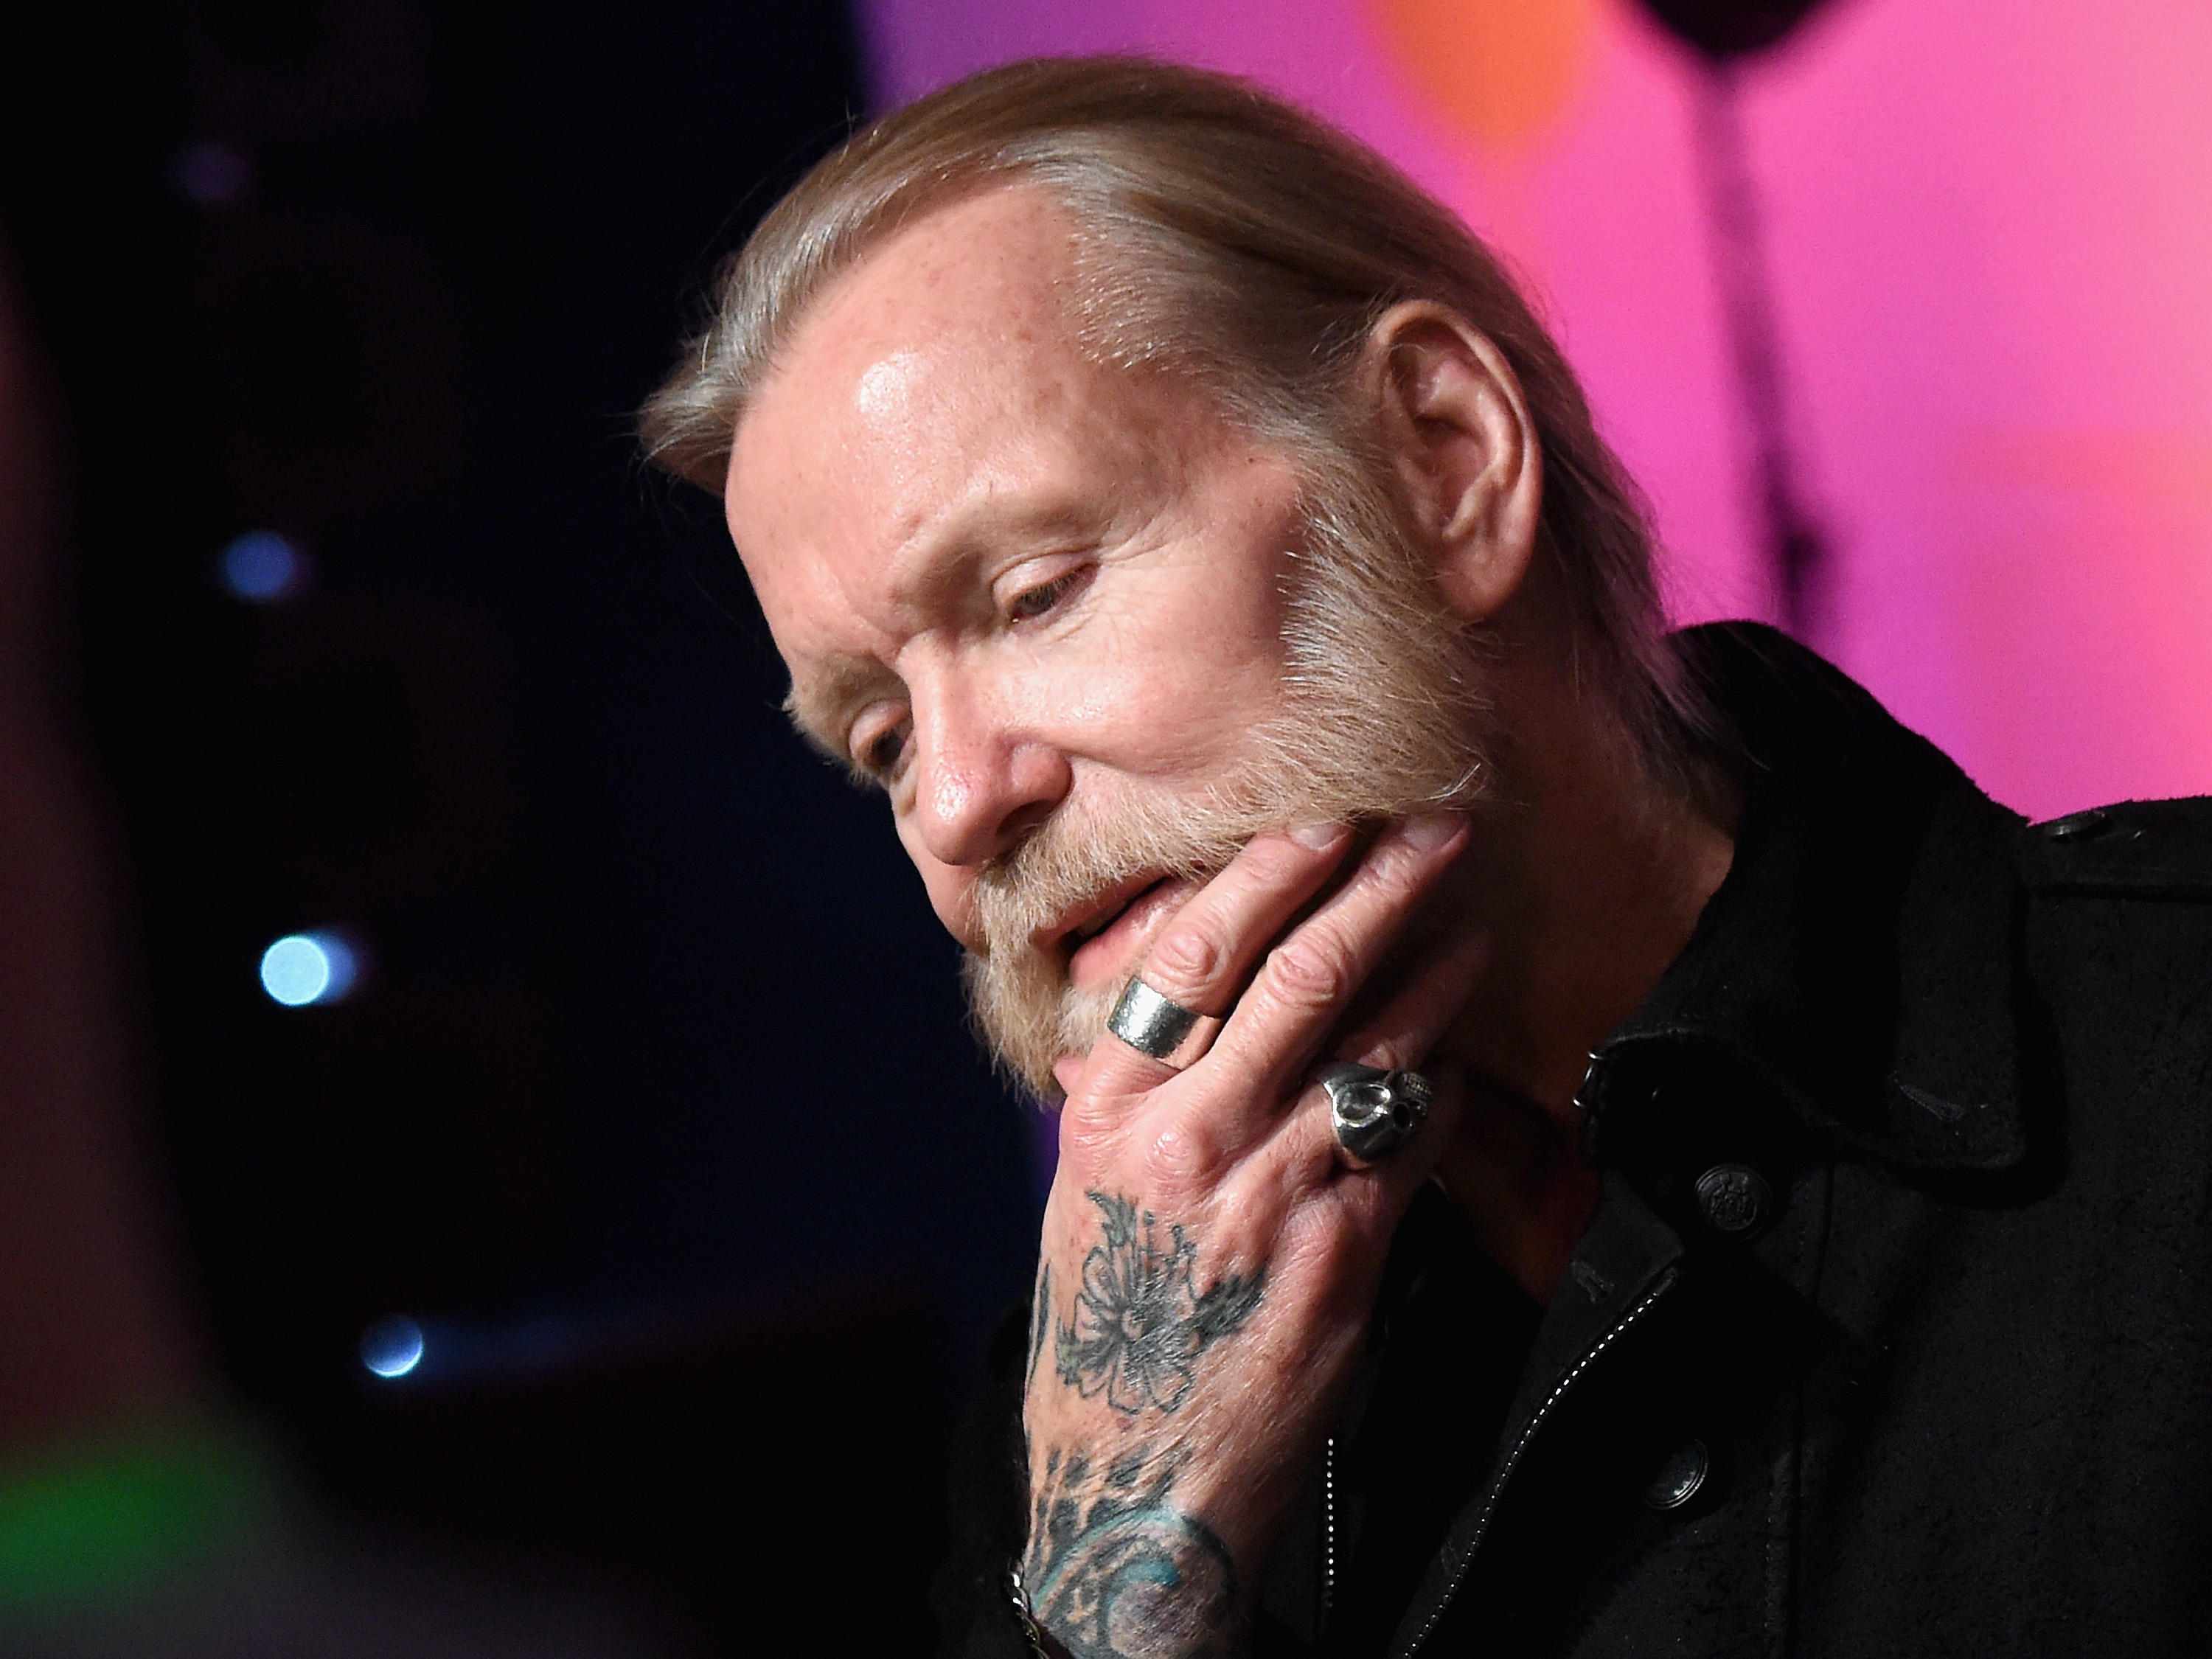 Gregg Allman, pioneering singer for The Allman Brothers, dies at 69